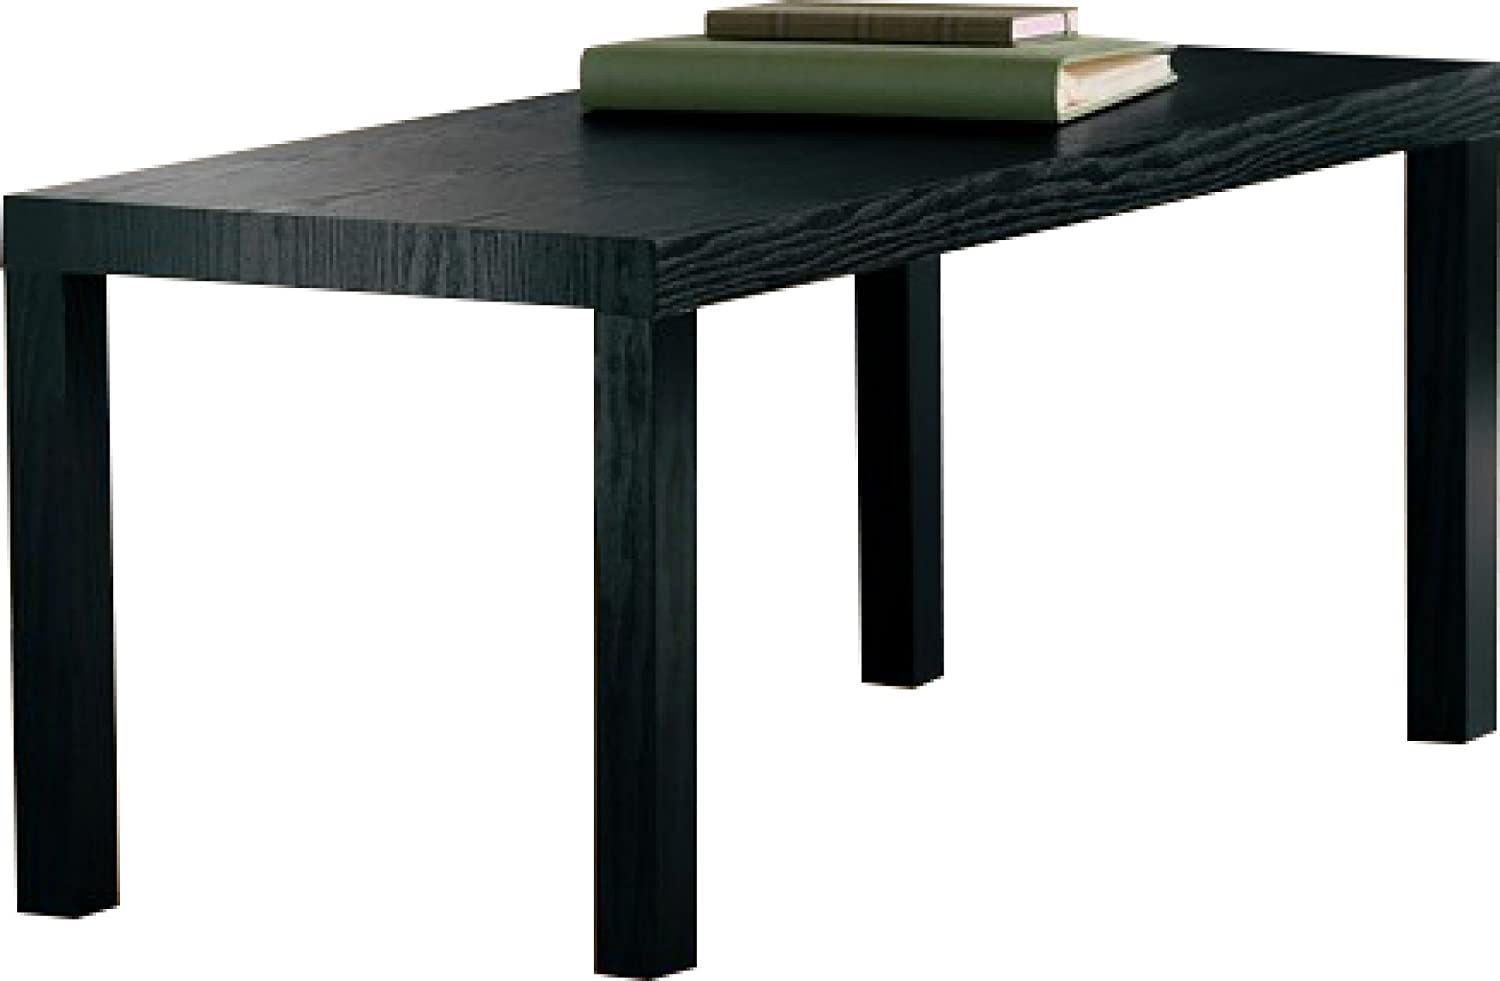 Parsons Square Coffee Table Amazoncom Dhp Parsons Modern Coffee Table Black Wood Grain